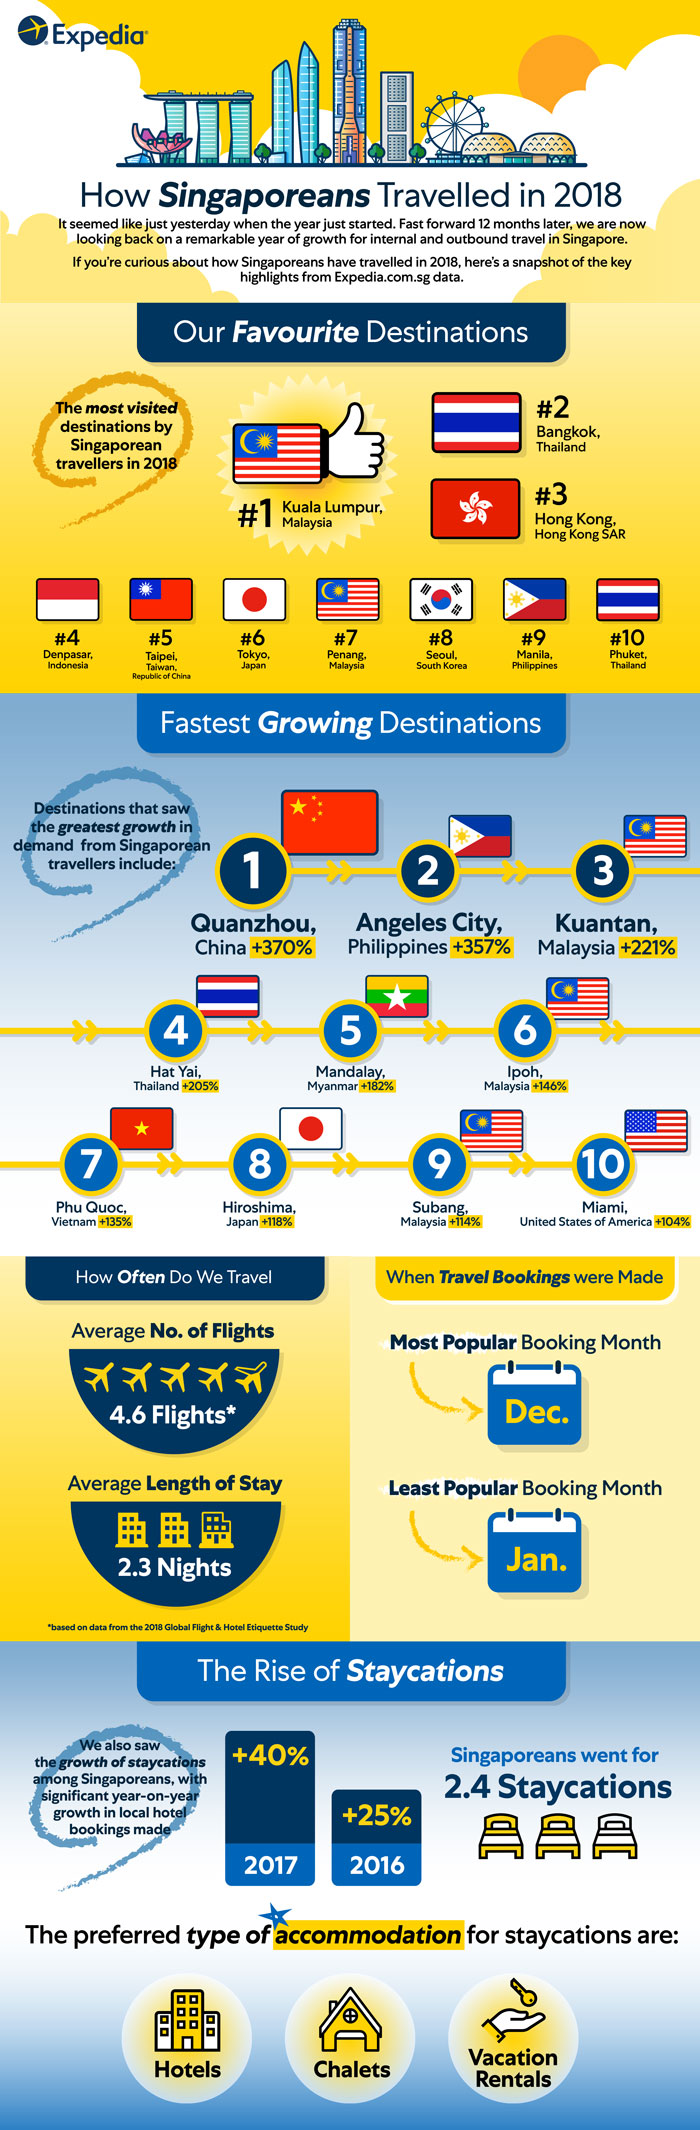 Expedia how singaporeans travelled in 2018